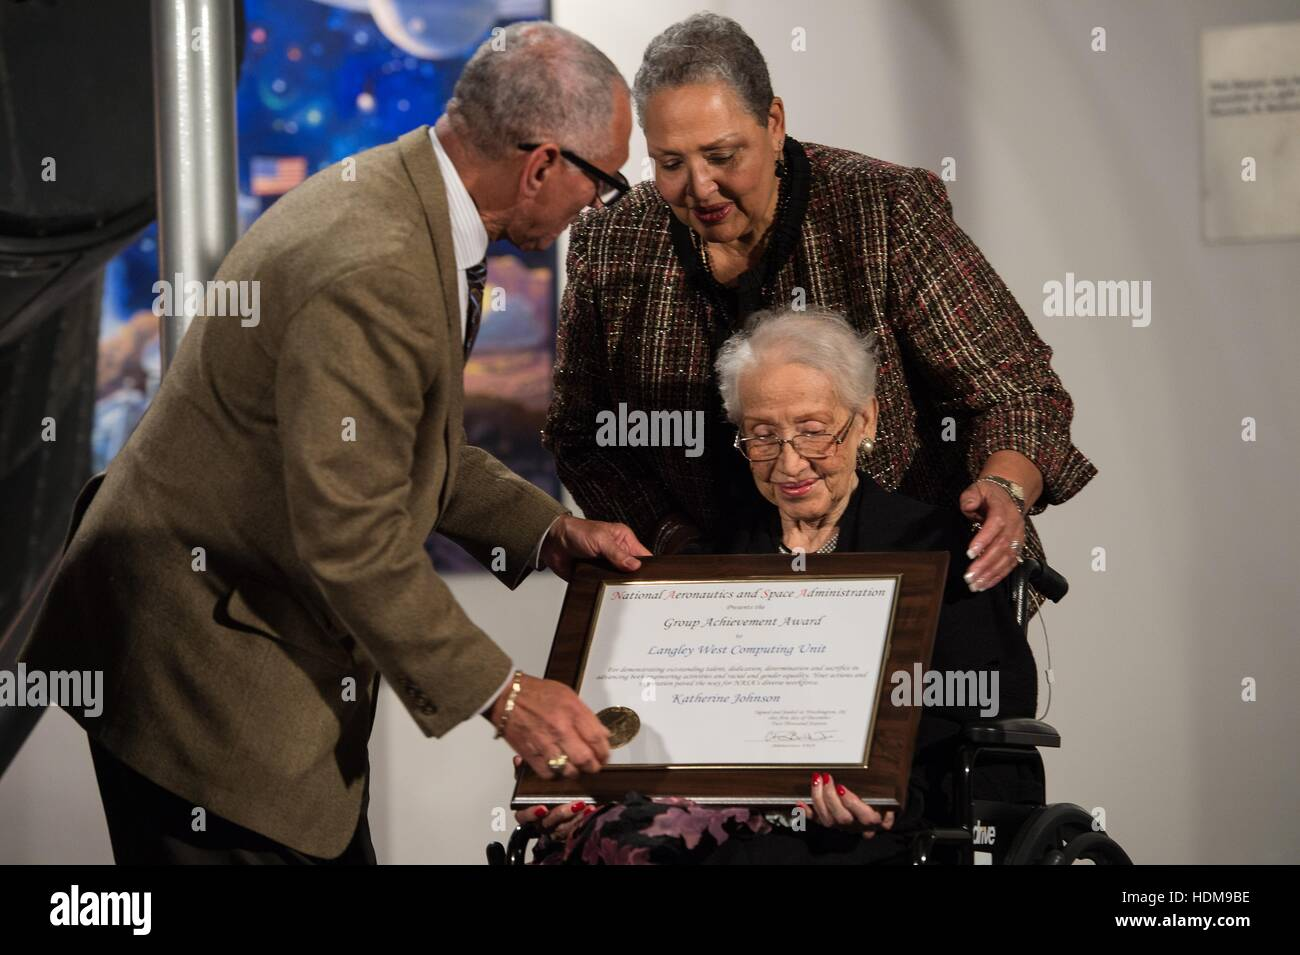 NASA Administrator Charles Bolden presents an award to African American mathematician, physicist, and space scientist - Stock Image